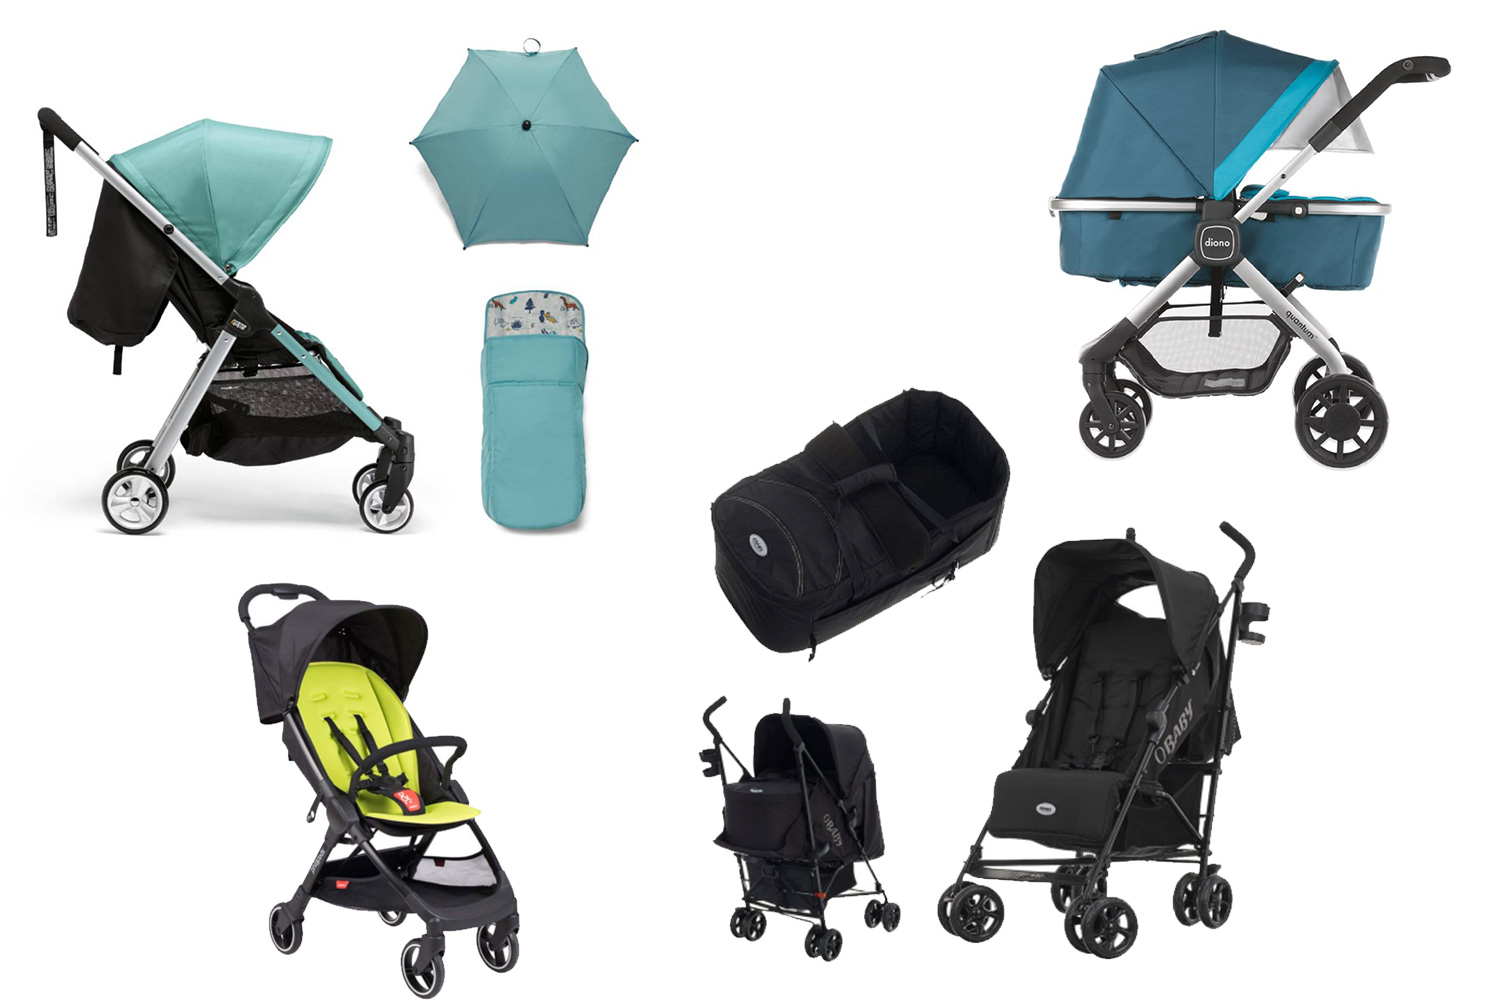 Best Newborn Prams Australia 2018 Cheapest And Best Value Prams 2019 The Sun Uk